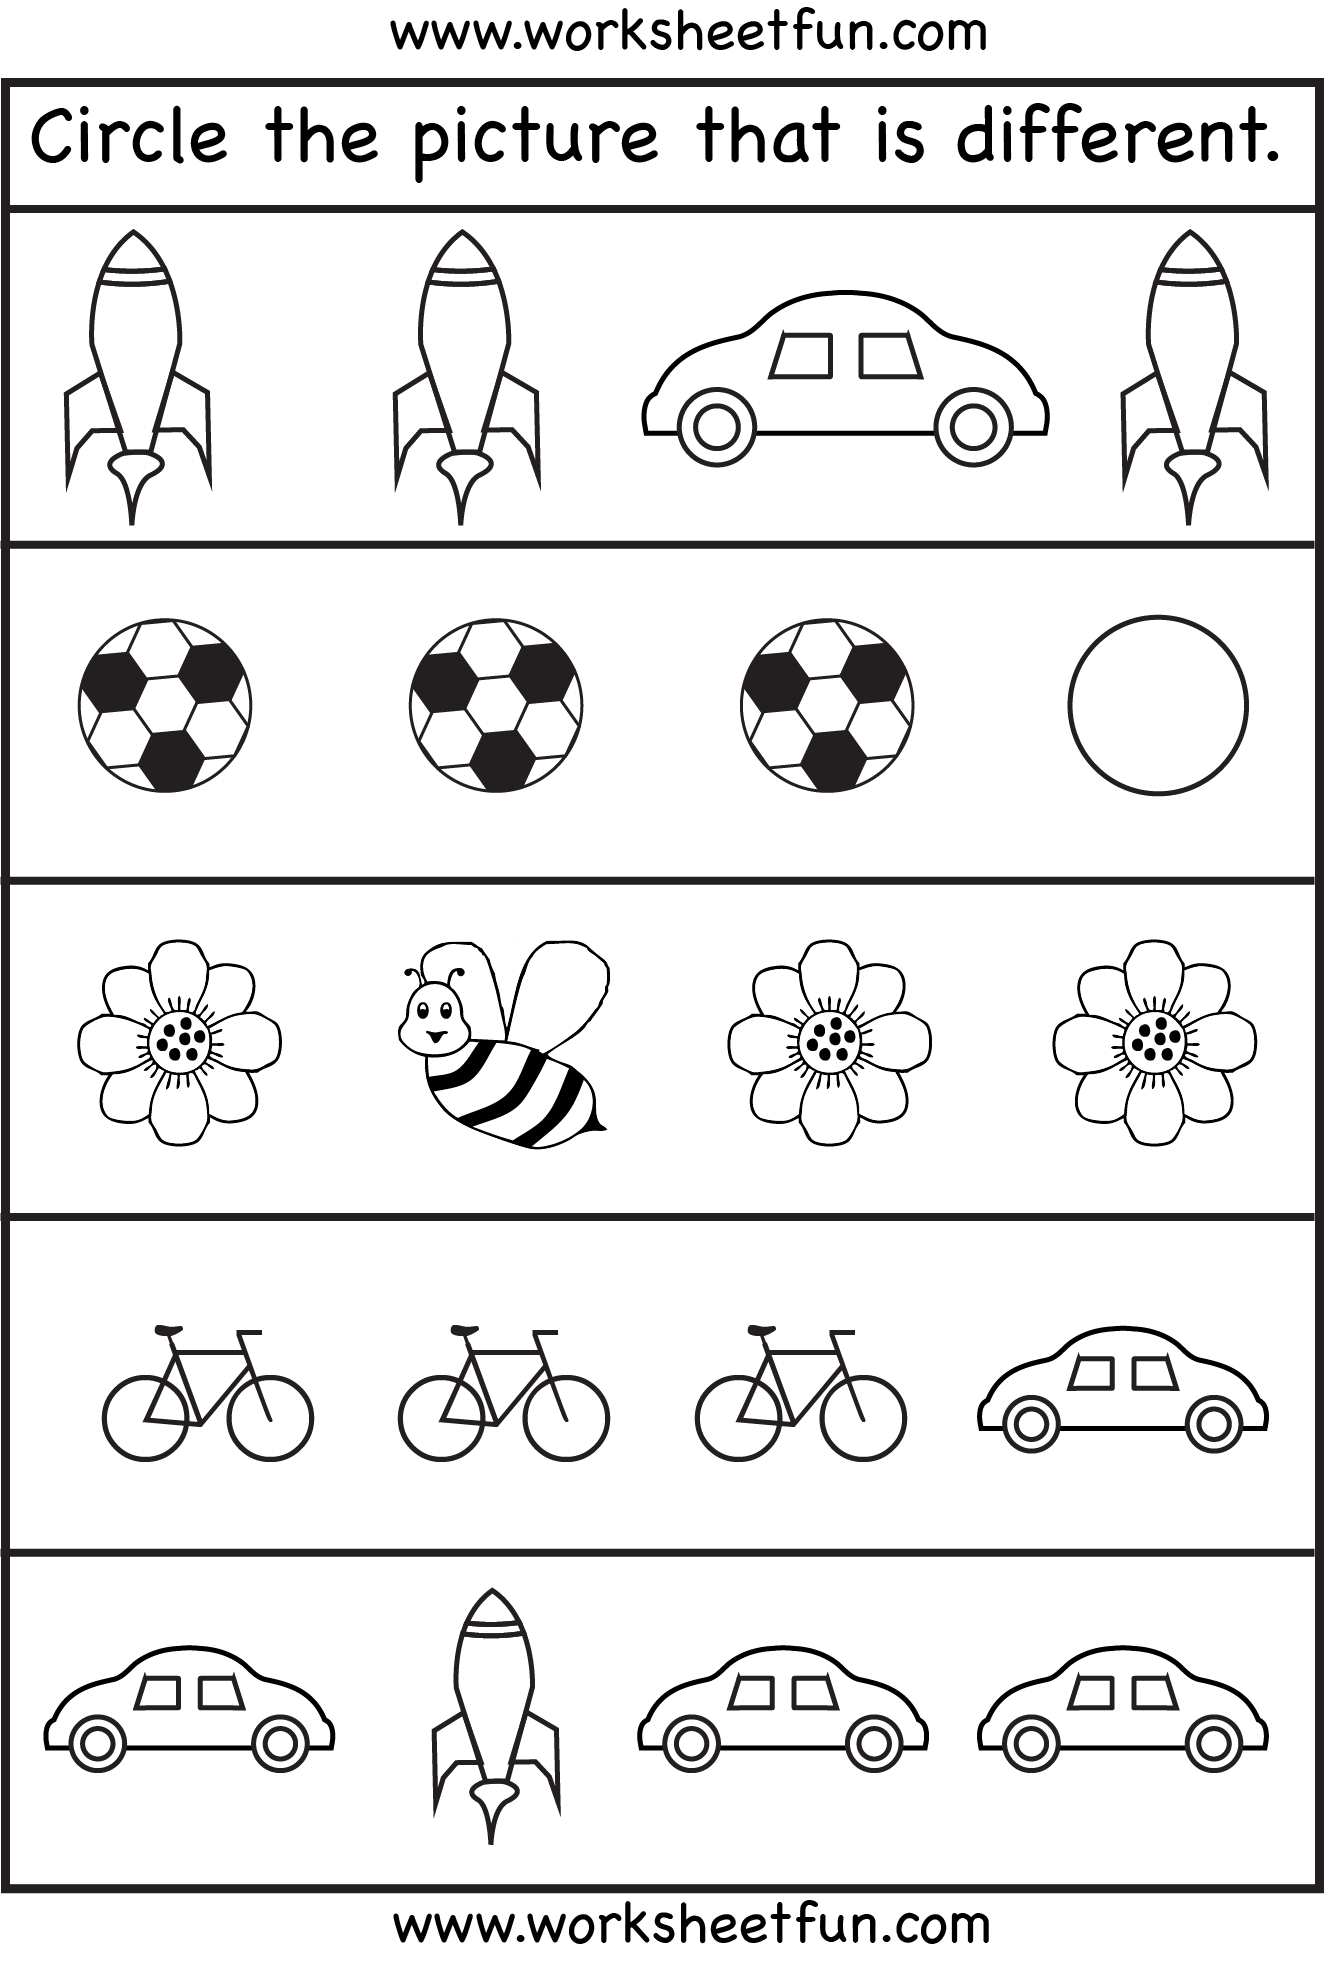 Printables Preschool Science Worksheets 1000 images about hearts on pinterest fine motor preschool worksheets and science worksheets